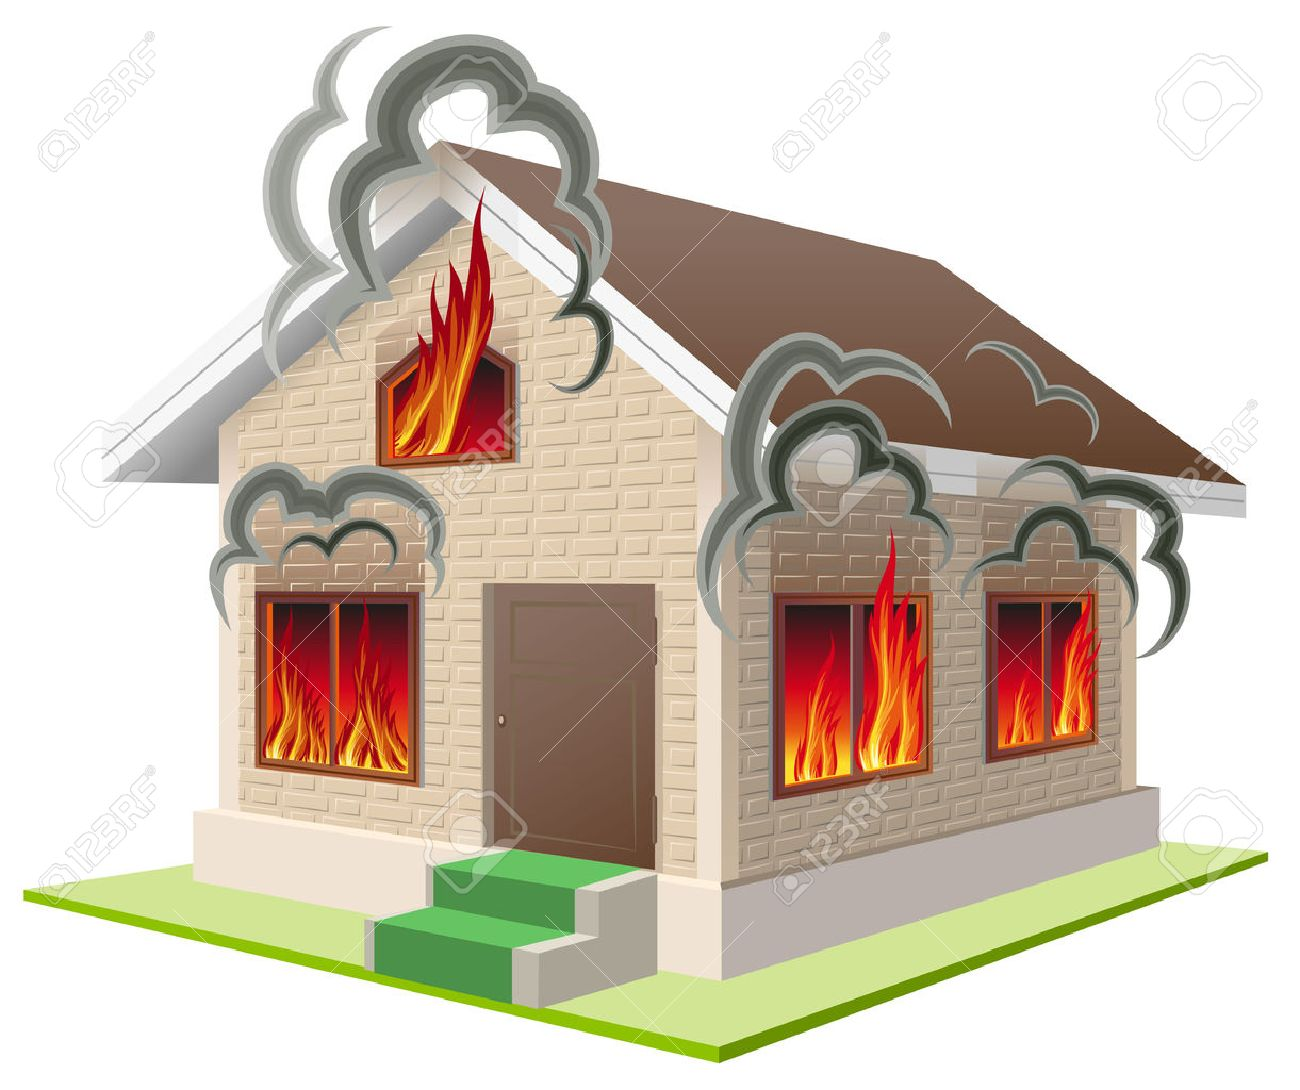 Stone house burns. Property insurance against fire. Home insurance. Isolated on white vector illustration - 49501648